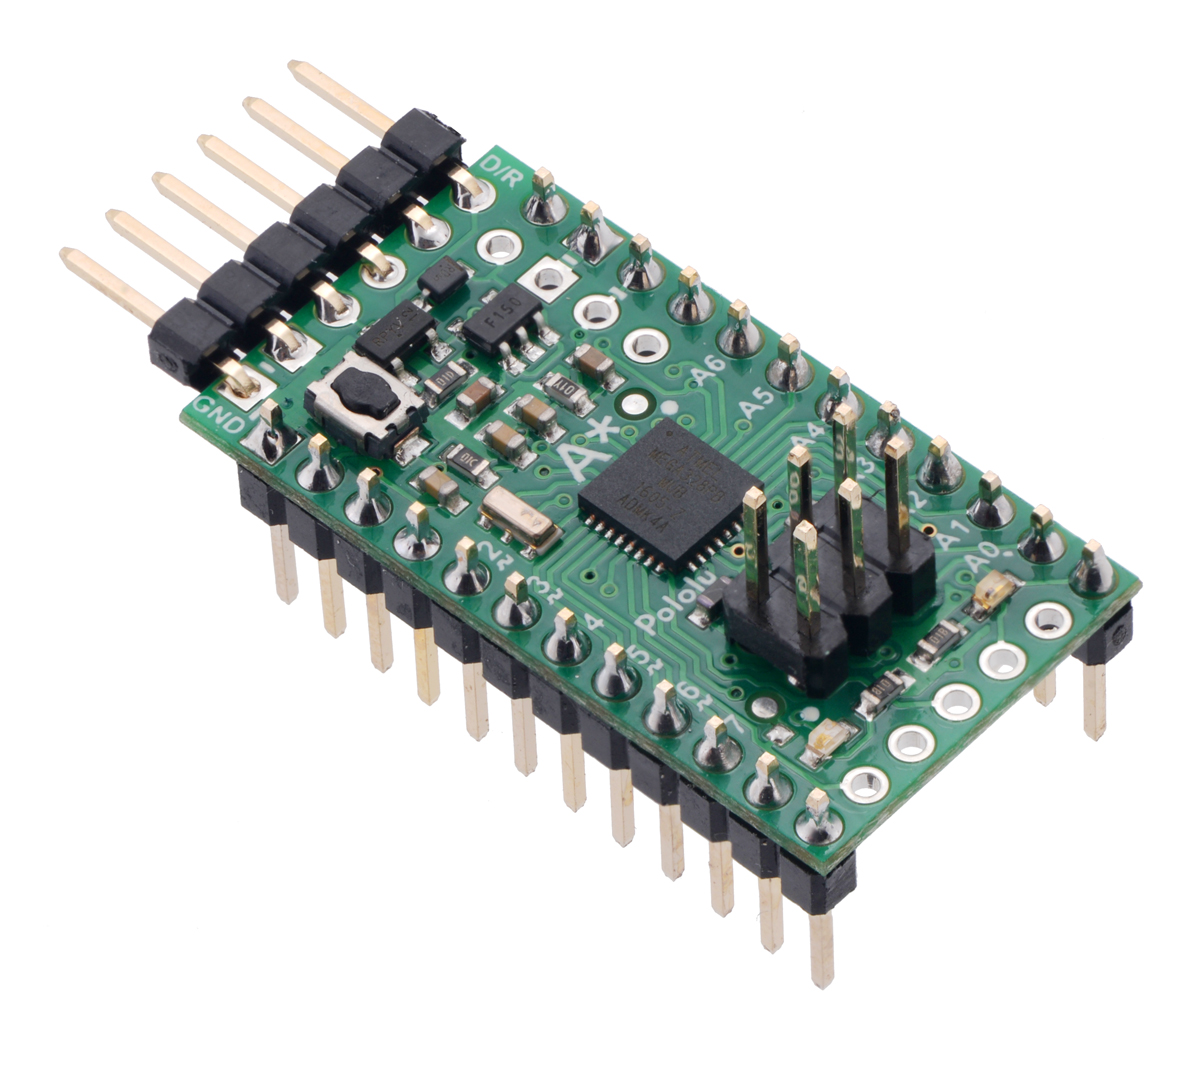 Pololu A Star 328pb Users Guide Why Usb To Serial Port Converter Cant Program Avr Microcontroller Micro With Included Header Pins Soldered For Breadboard Use